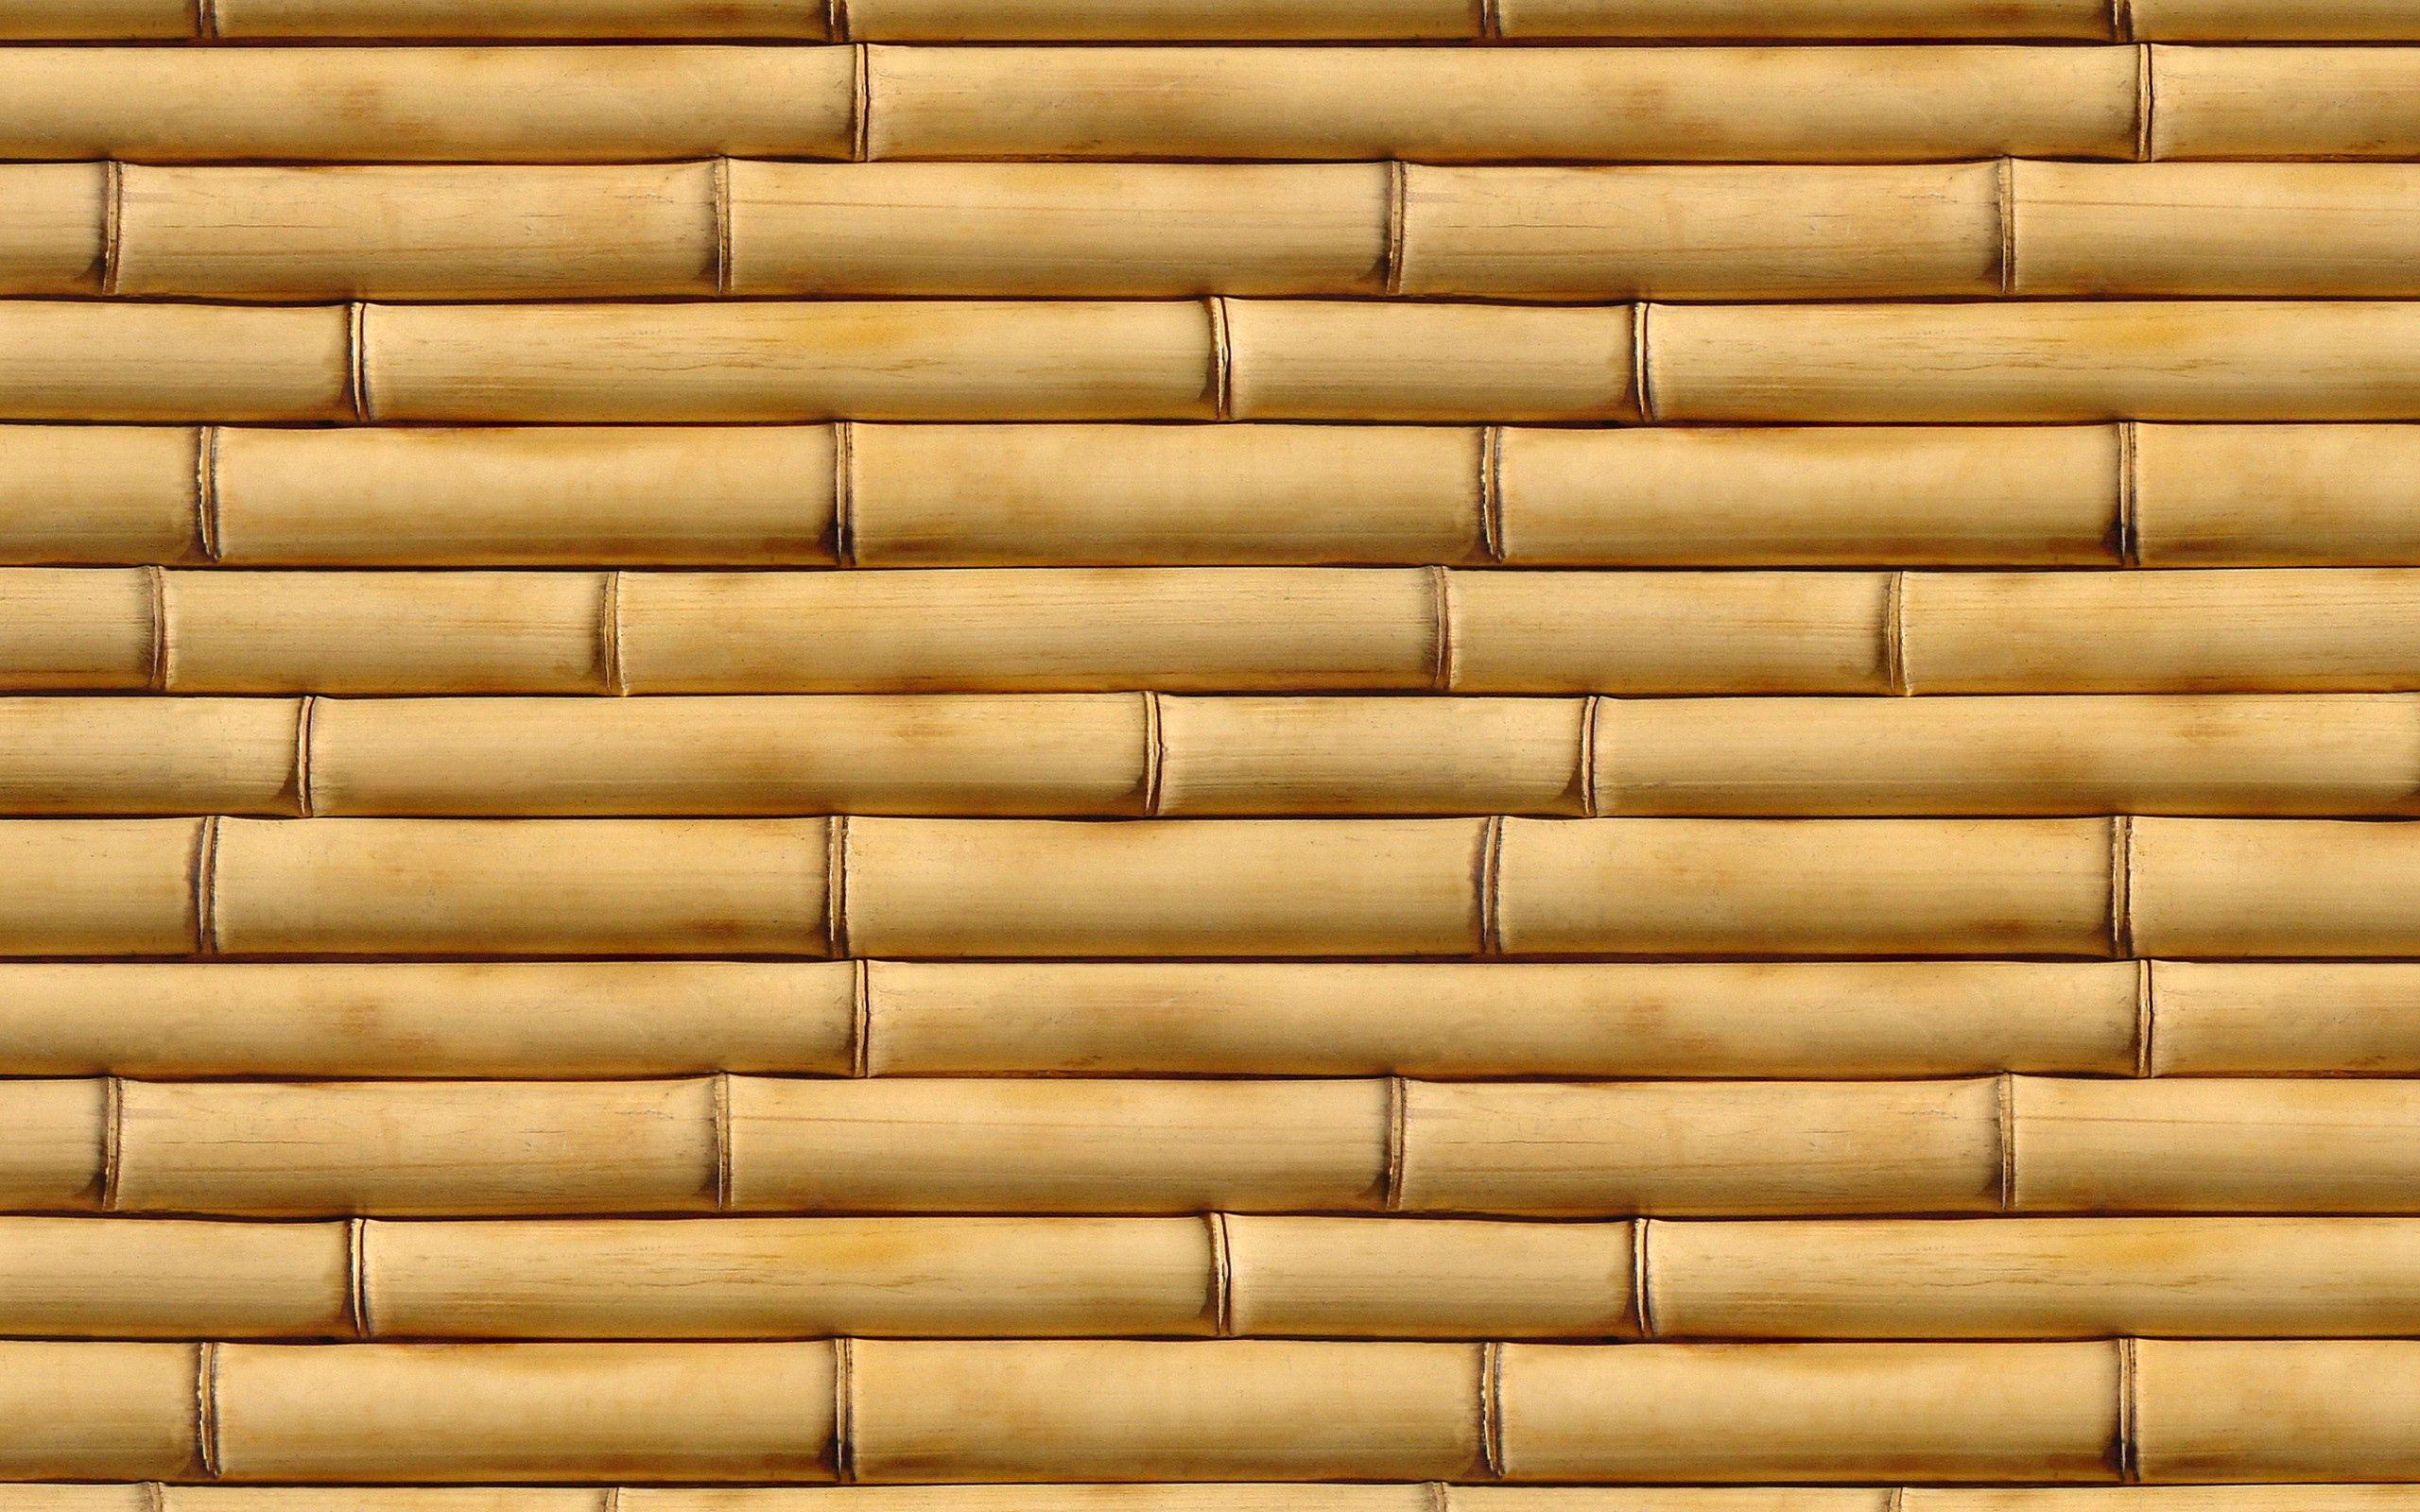 147973 download wallpaper Textures, Texture, Bamboo, Vertical, Wood, Wooden screensavers and pictures for free